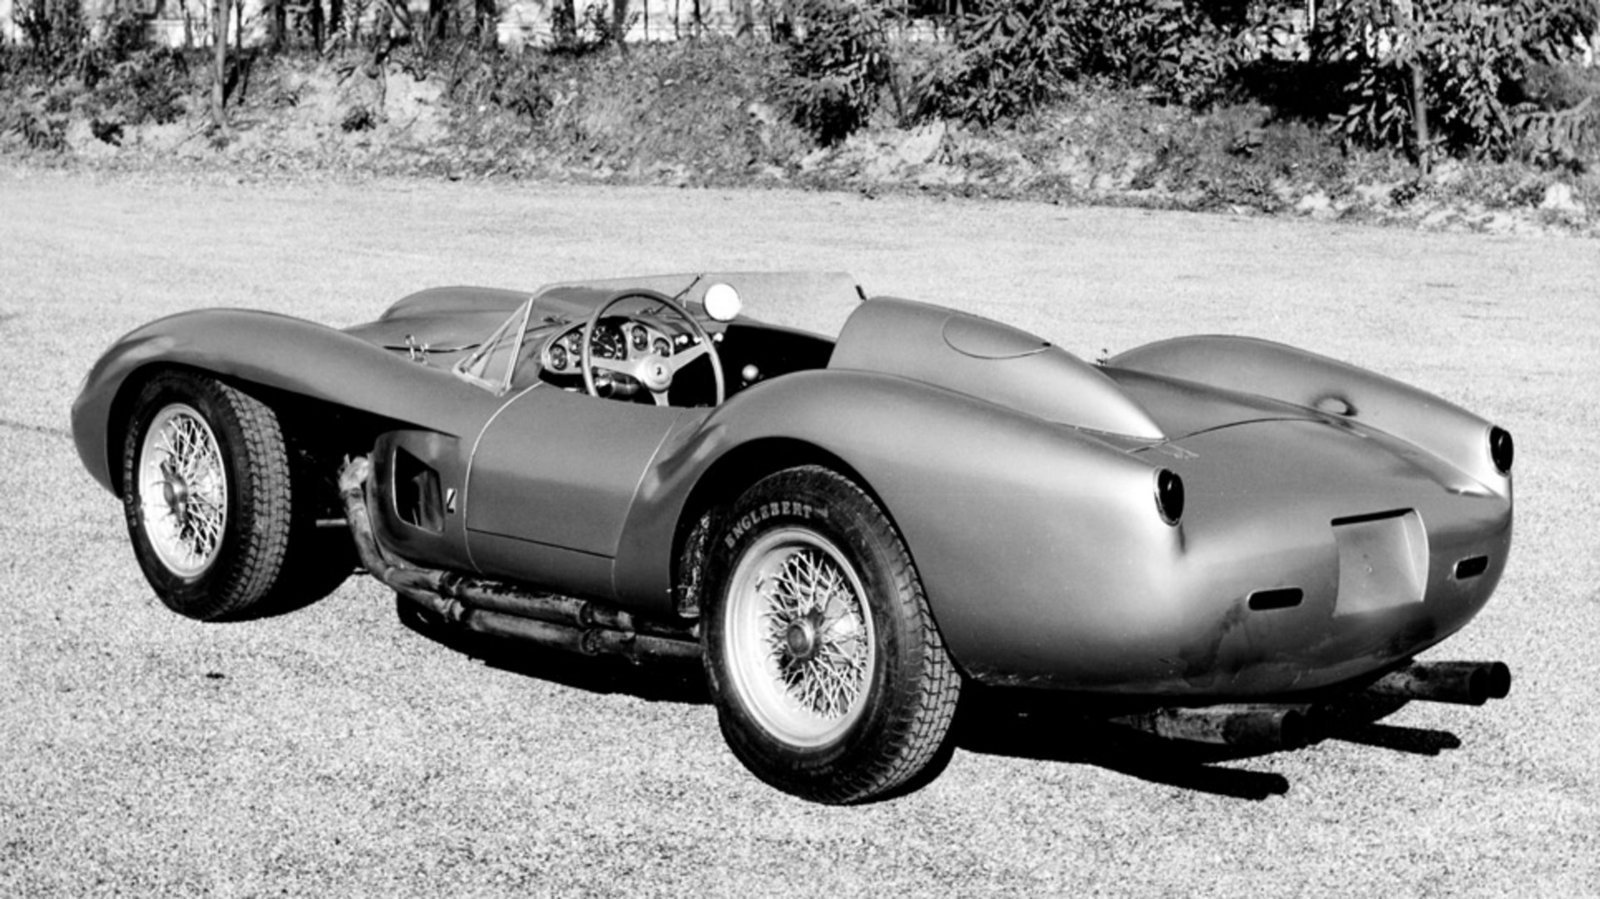 1957 ferrari 250 testa rossa prototype picture 676419 car review top speed. Black Bedroom Furniture Sets. Home Design Ideas